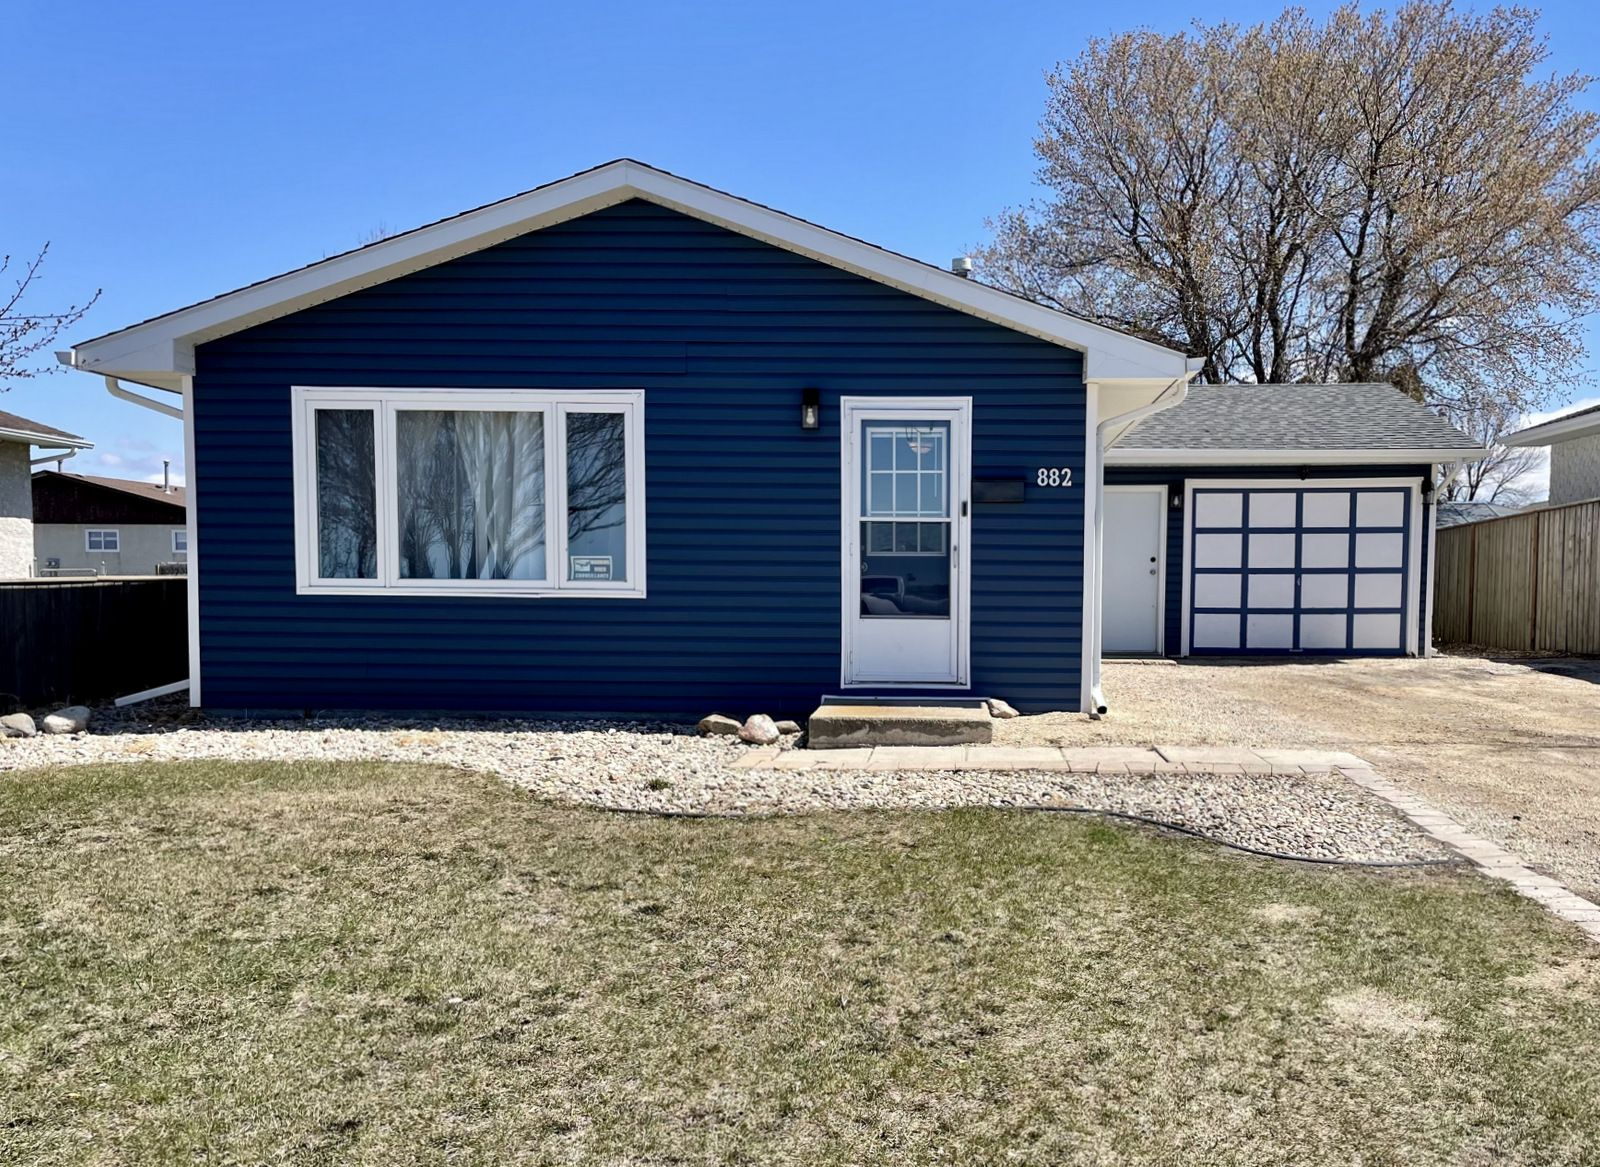 Main Photo: 882 10th Street NW in Portage la Prairie: House for sale : MLS®# 202111216